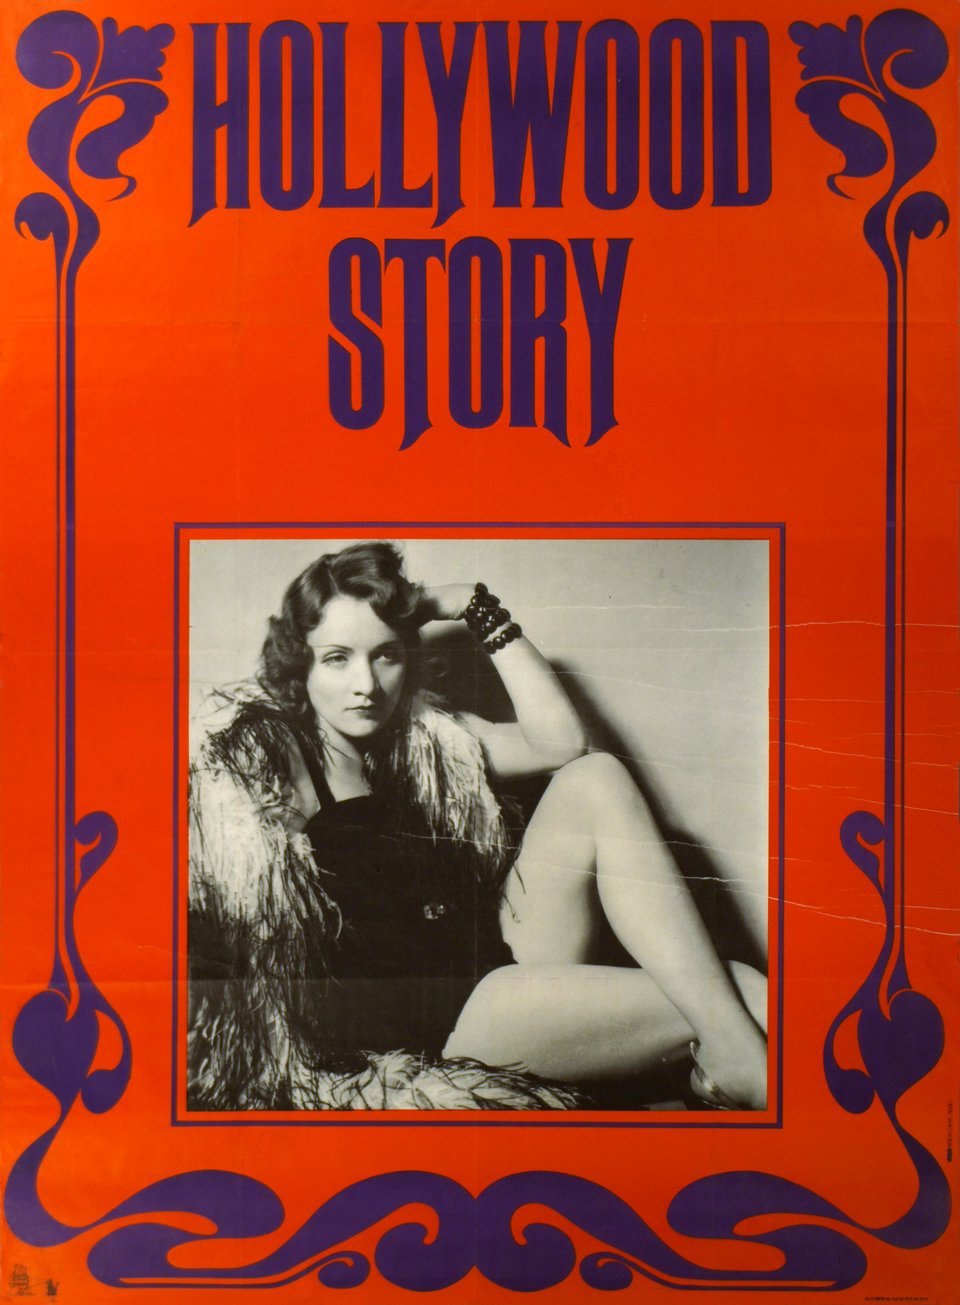 Hollywood Story – Affiche ancienne –  ANONYME – 1970